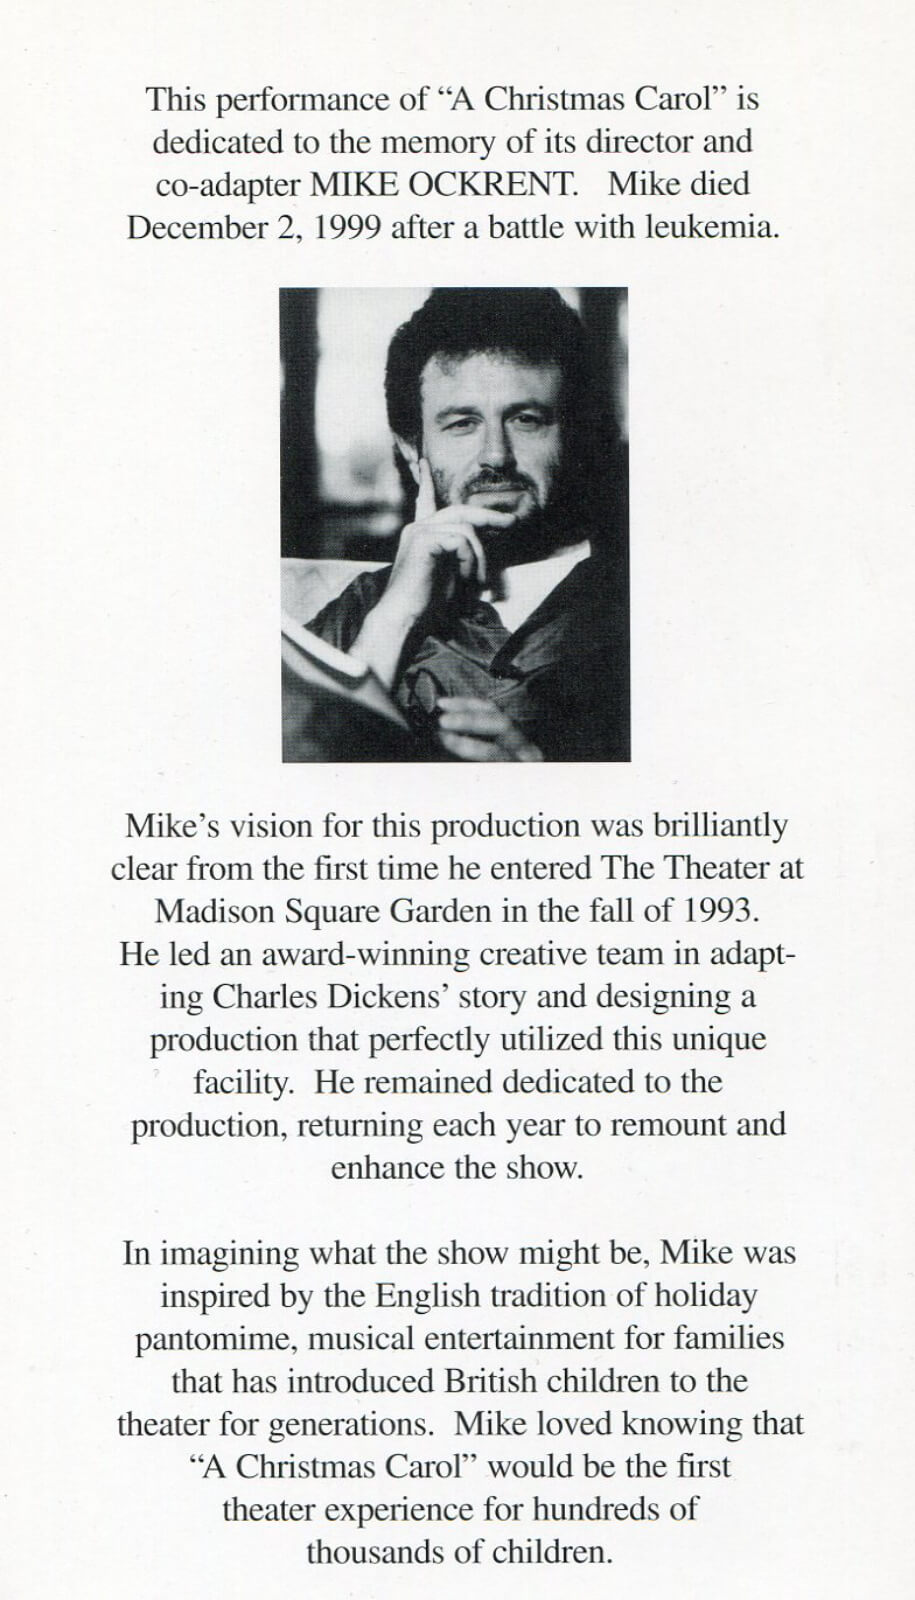 A printed dedication to Director Mike Ockrent after his passing in 1999 with a his black and white headshot featured